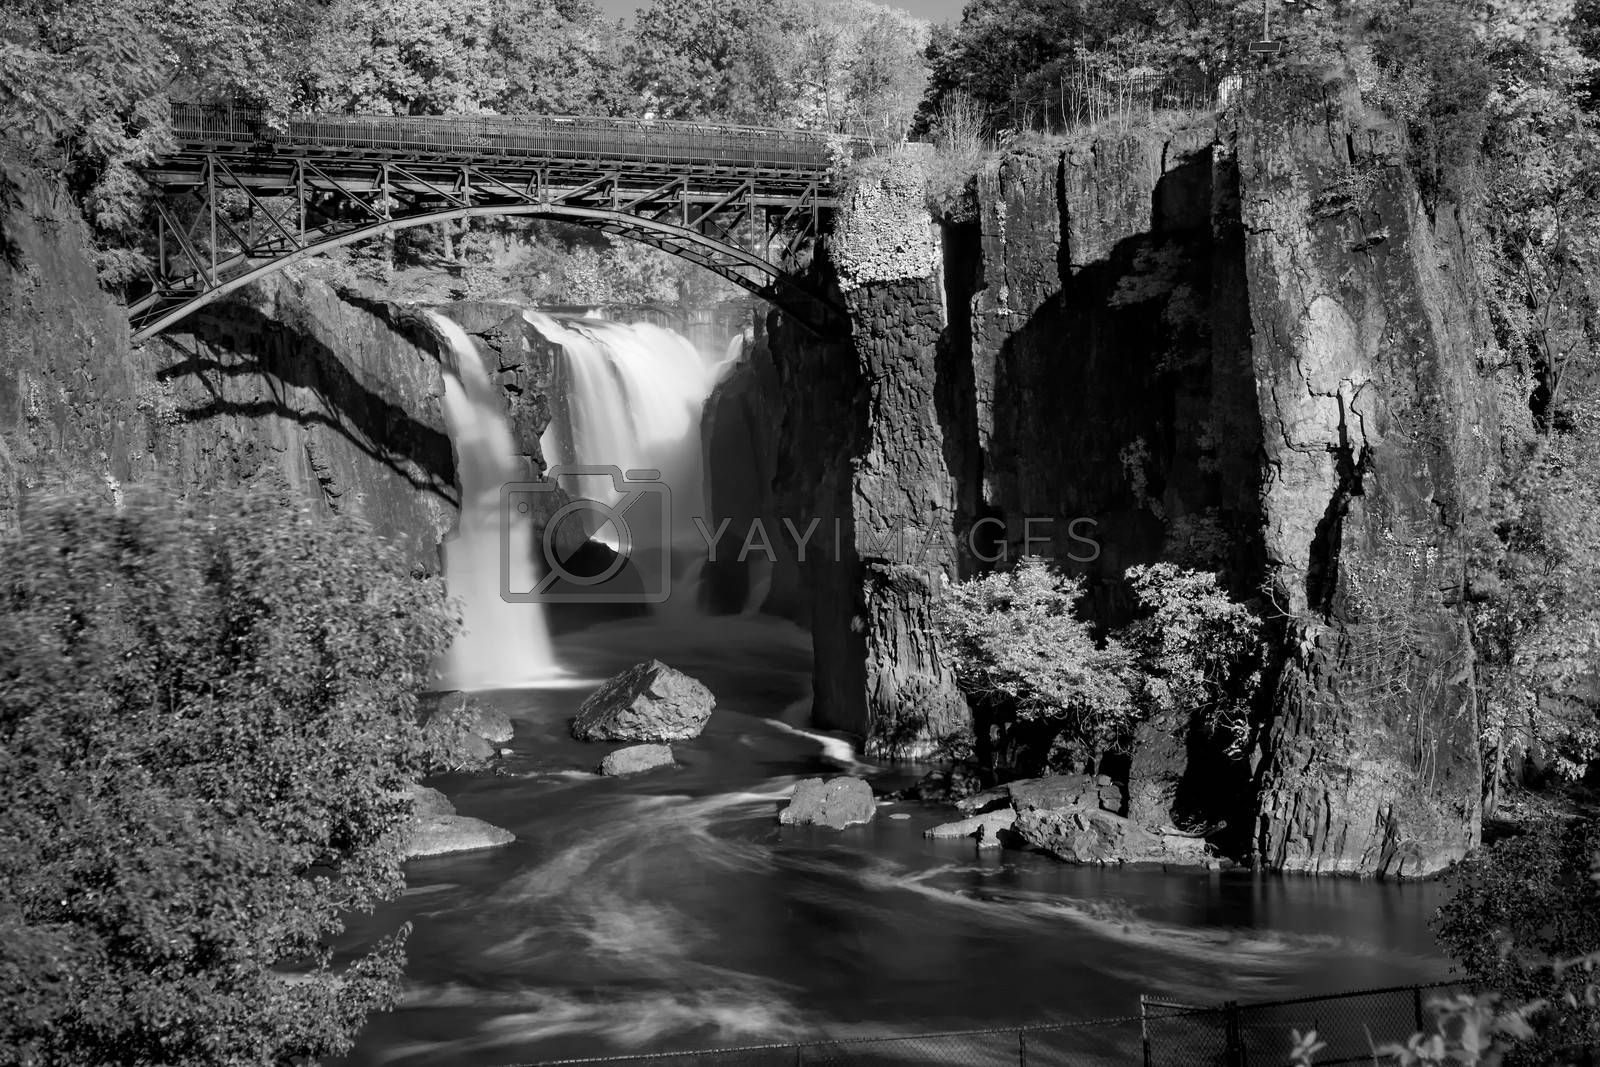 Infrared Image, the Great Falls in Paterson, New Jersey